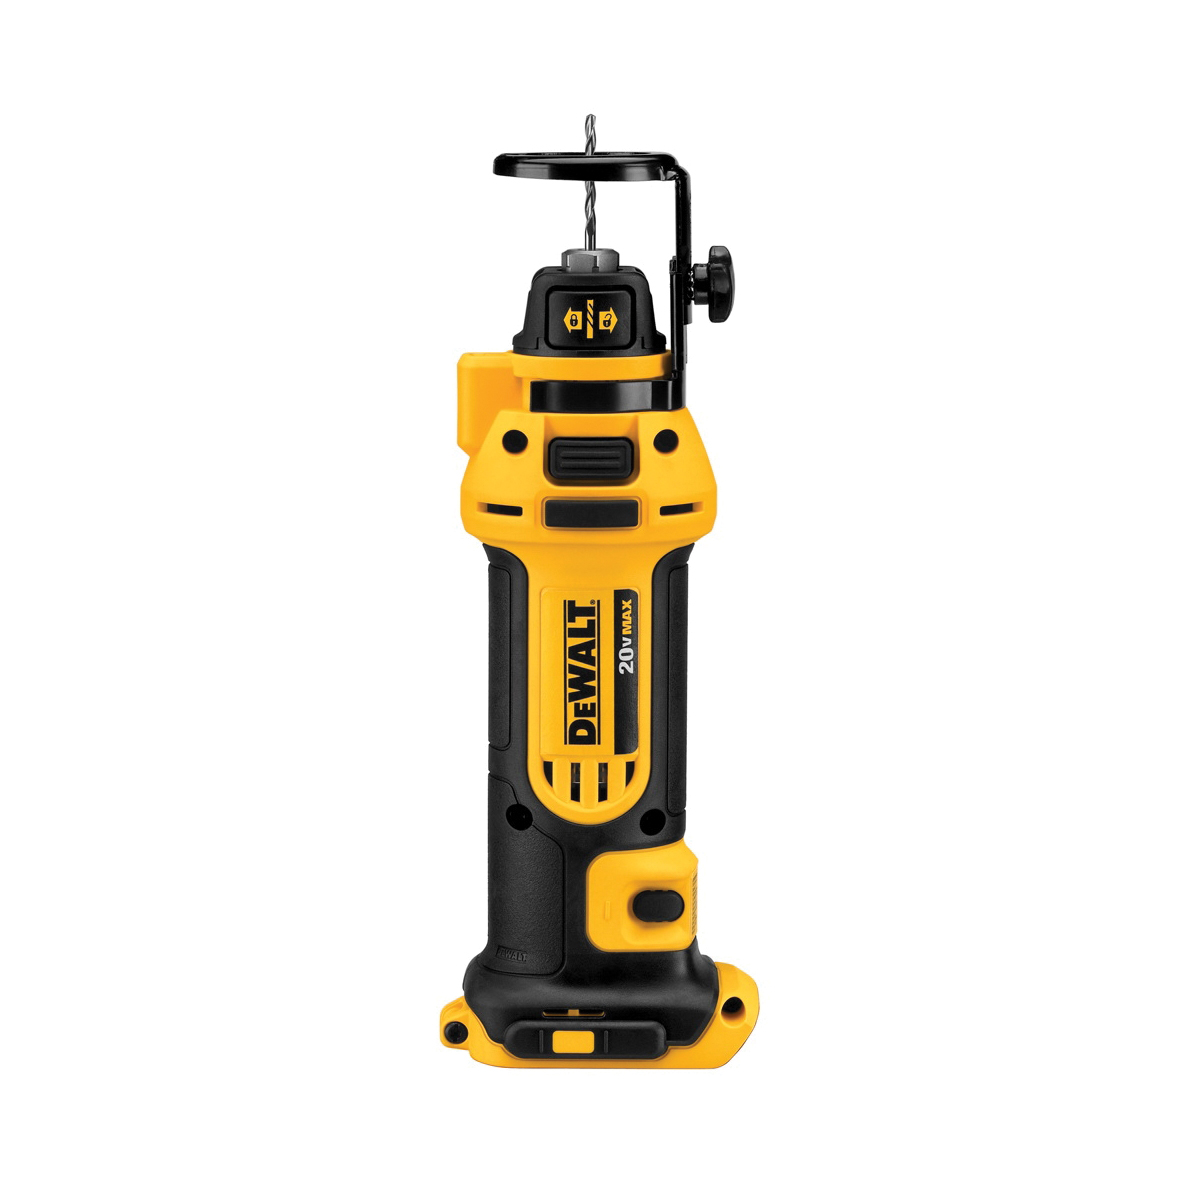 DeWALT® DCS551B Cordless Cut-Out Tool, Lithium-Ion Battery, 20 VDC, 1/4 in, 1/8 in Collet